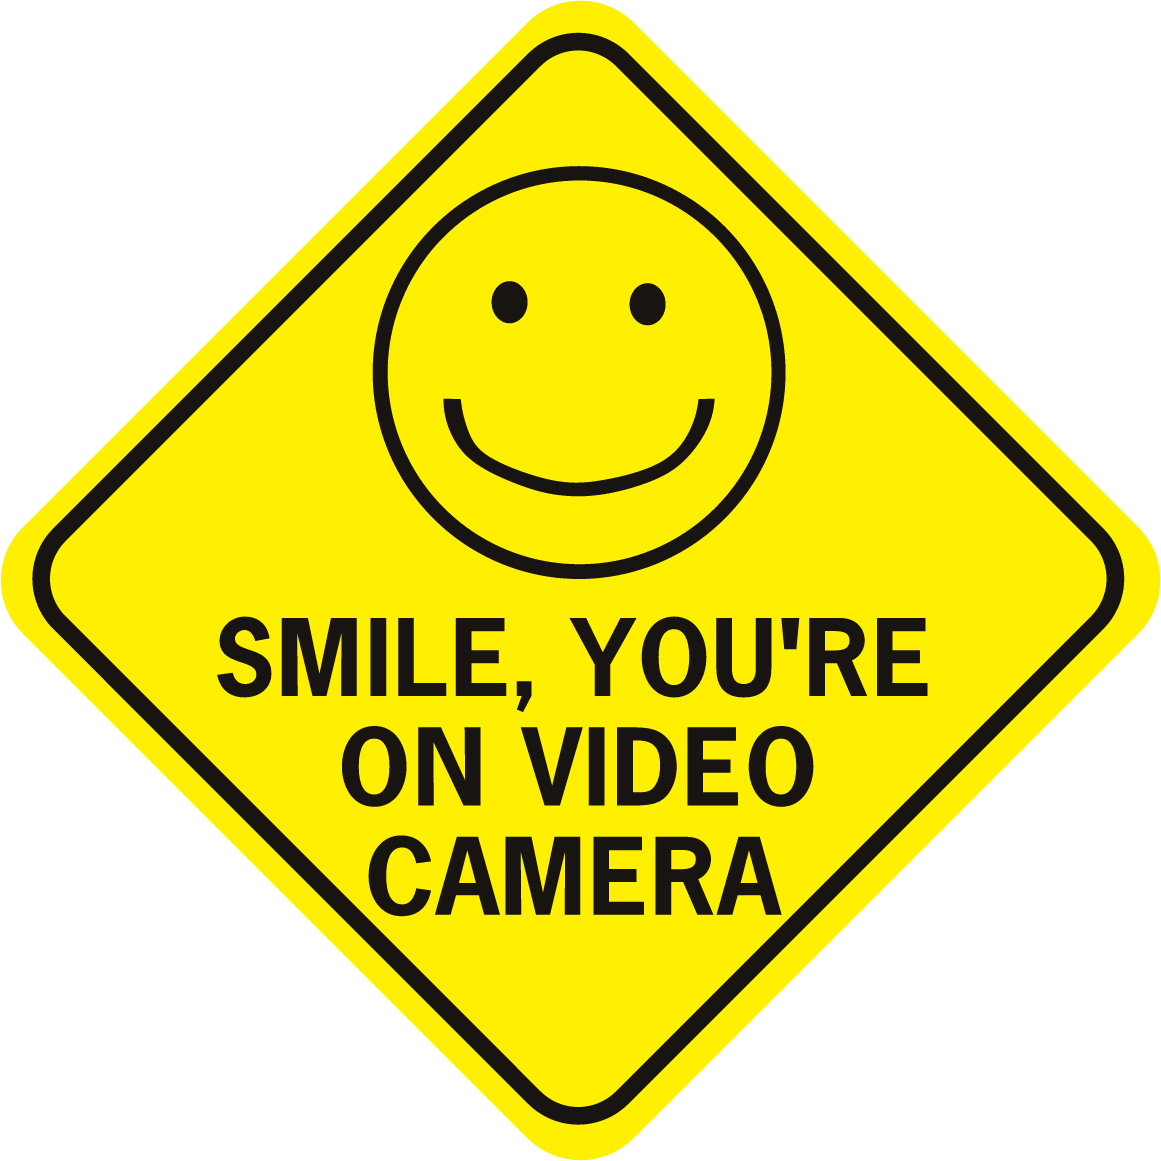 Smile you re on. Camera clipart smiley face